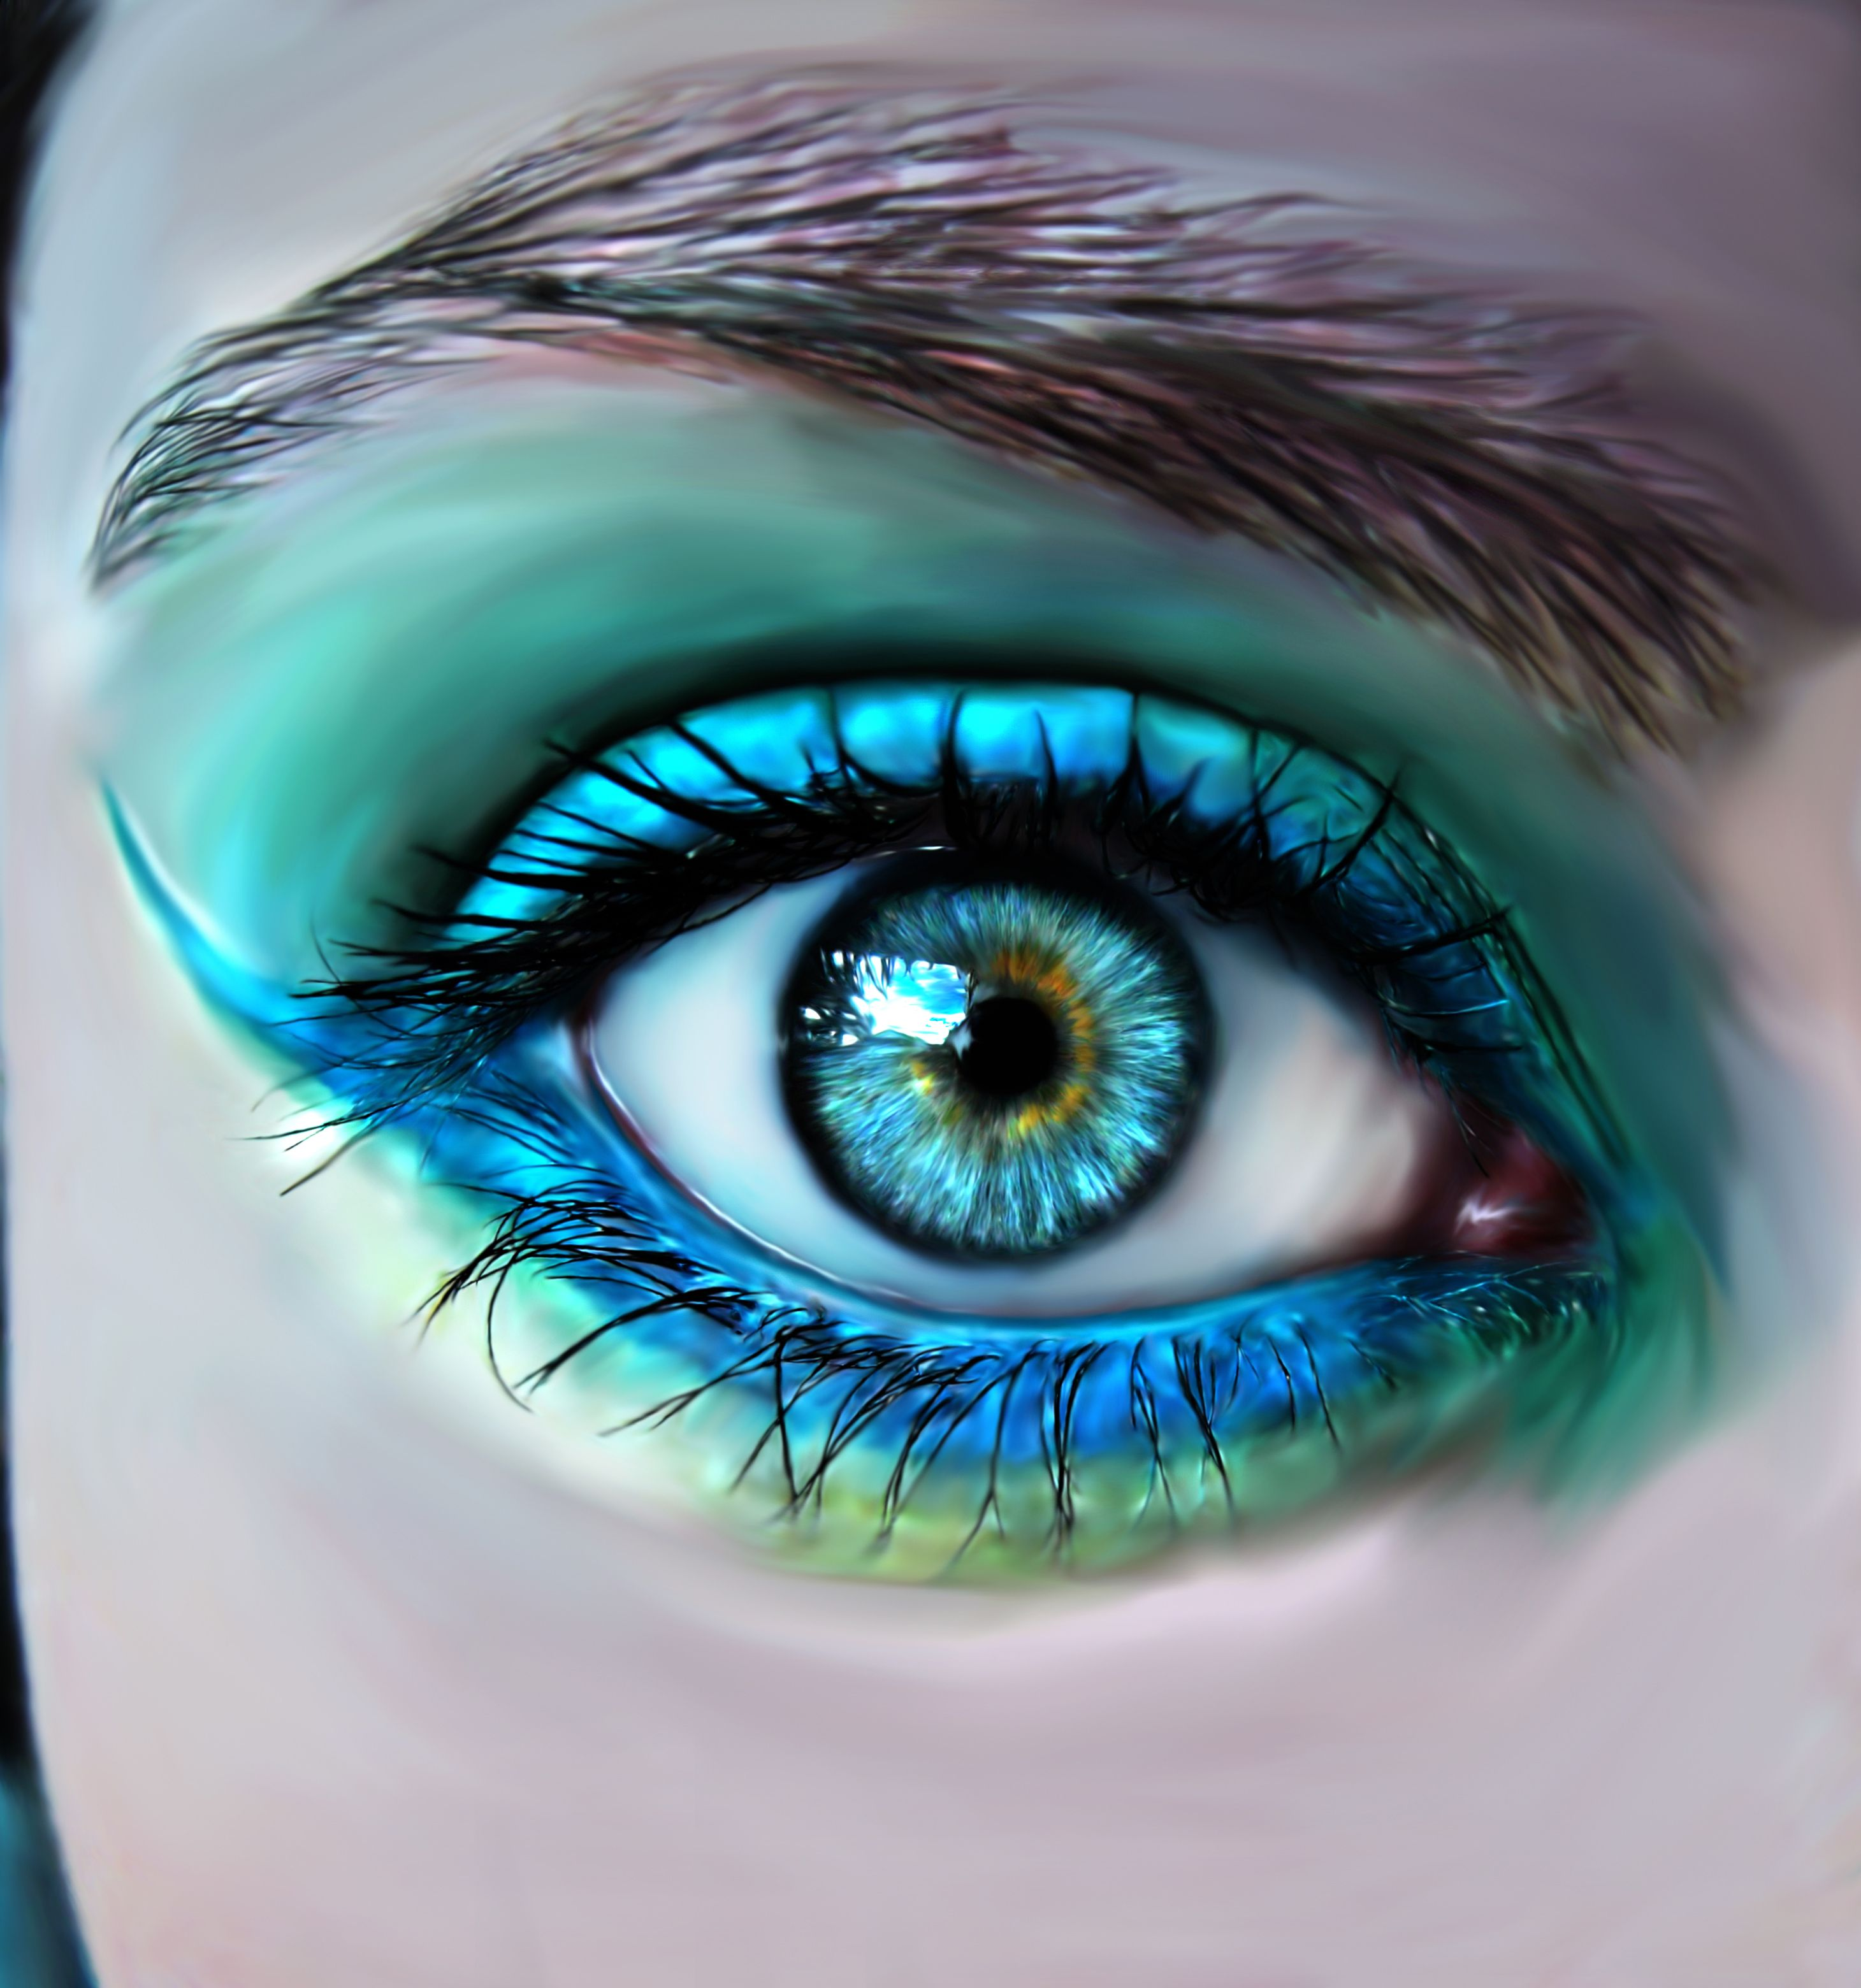 Pin By Elysse Nebben On Pretty Things Turquoise Eyes